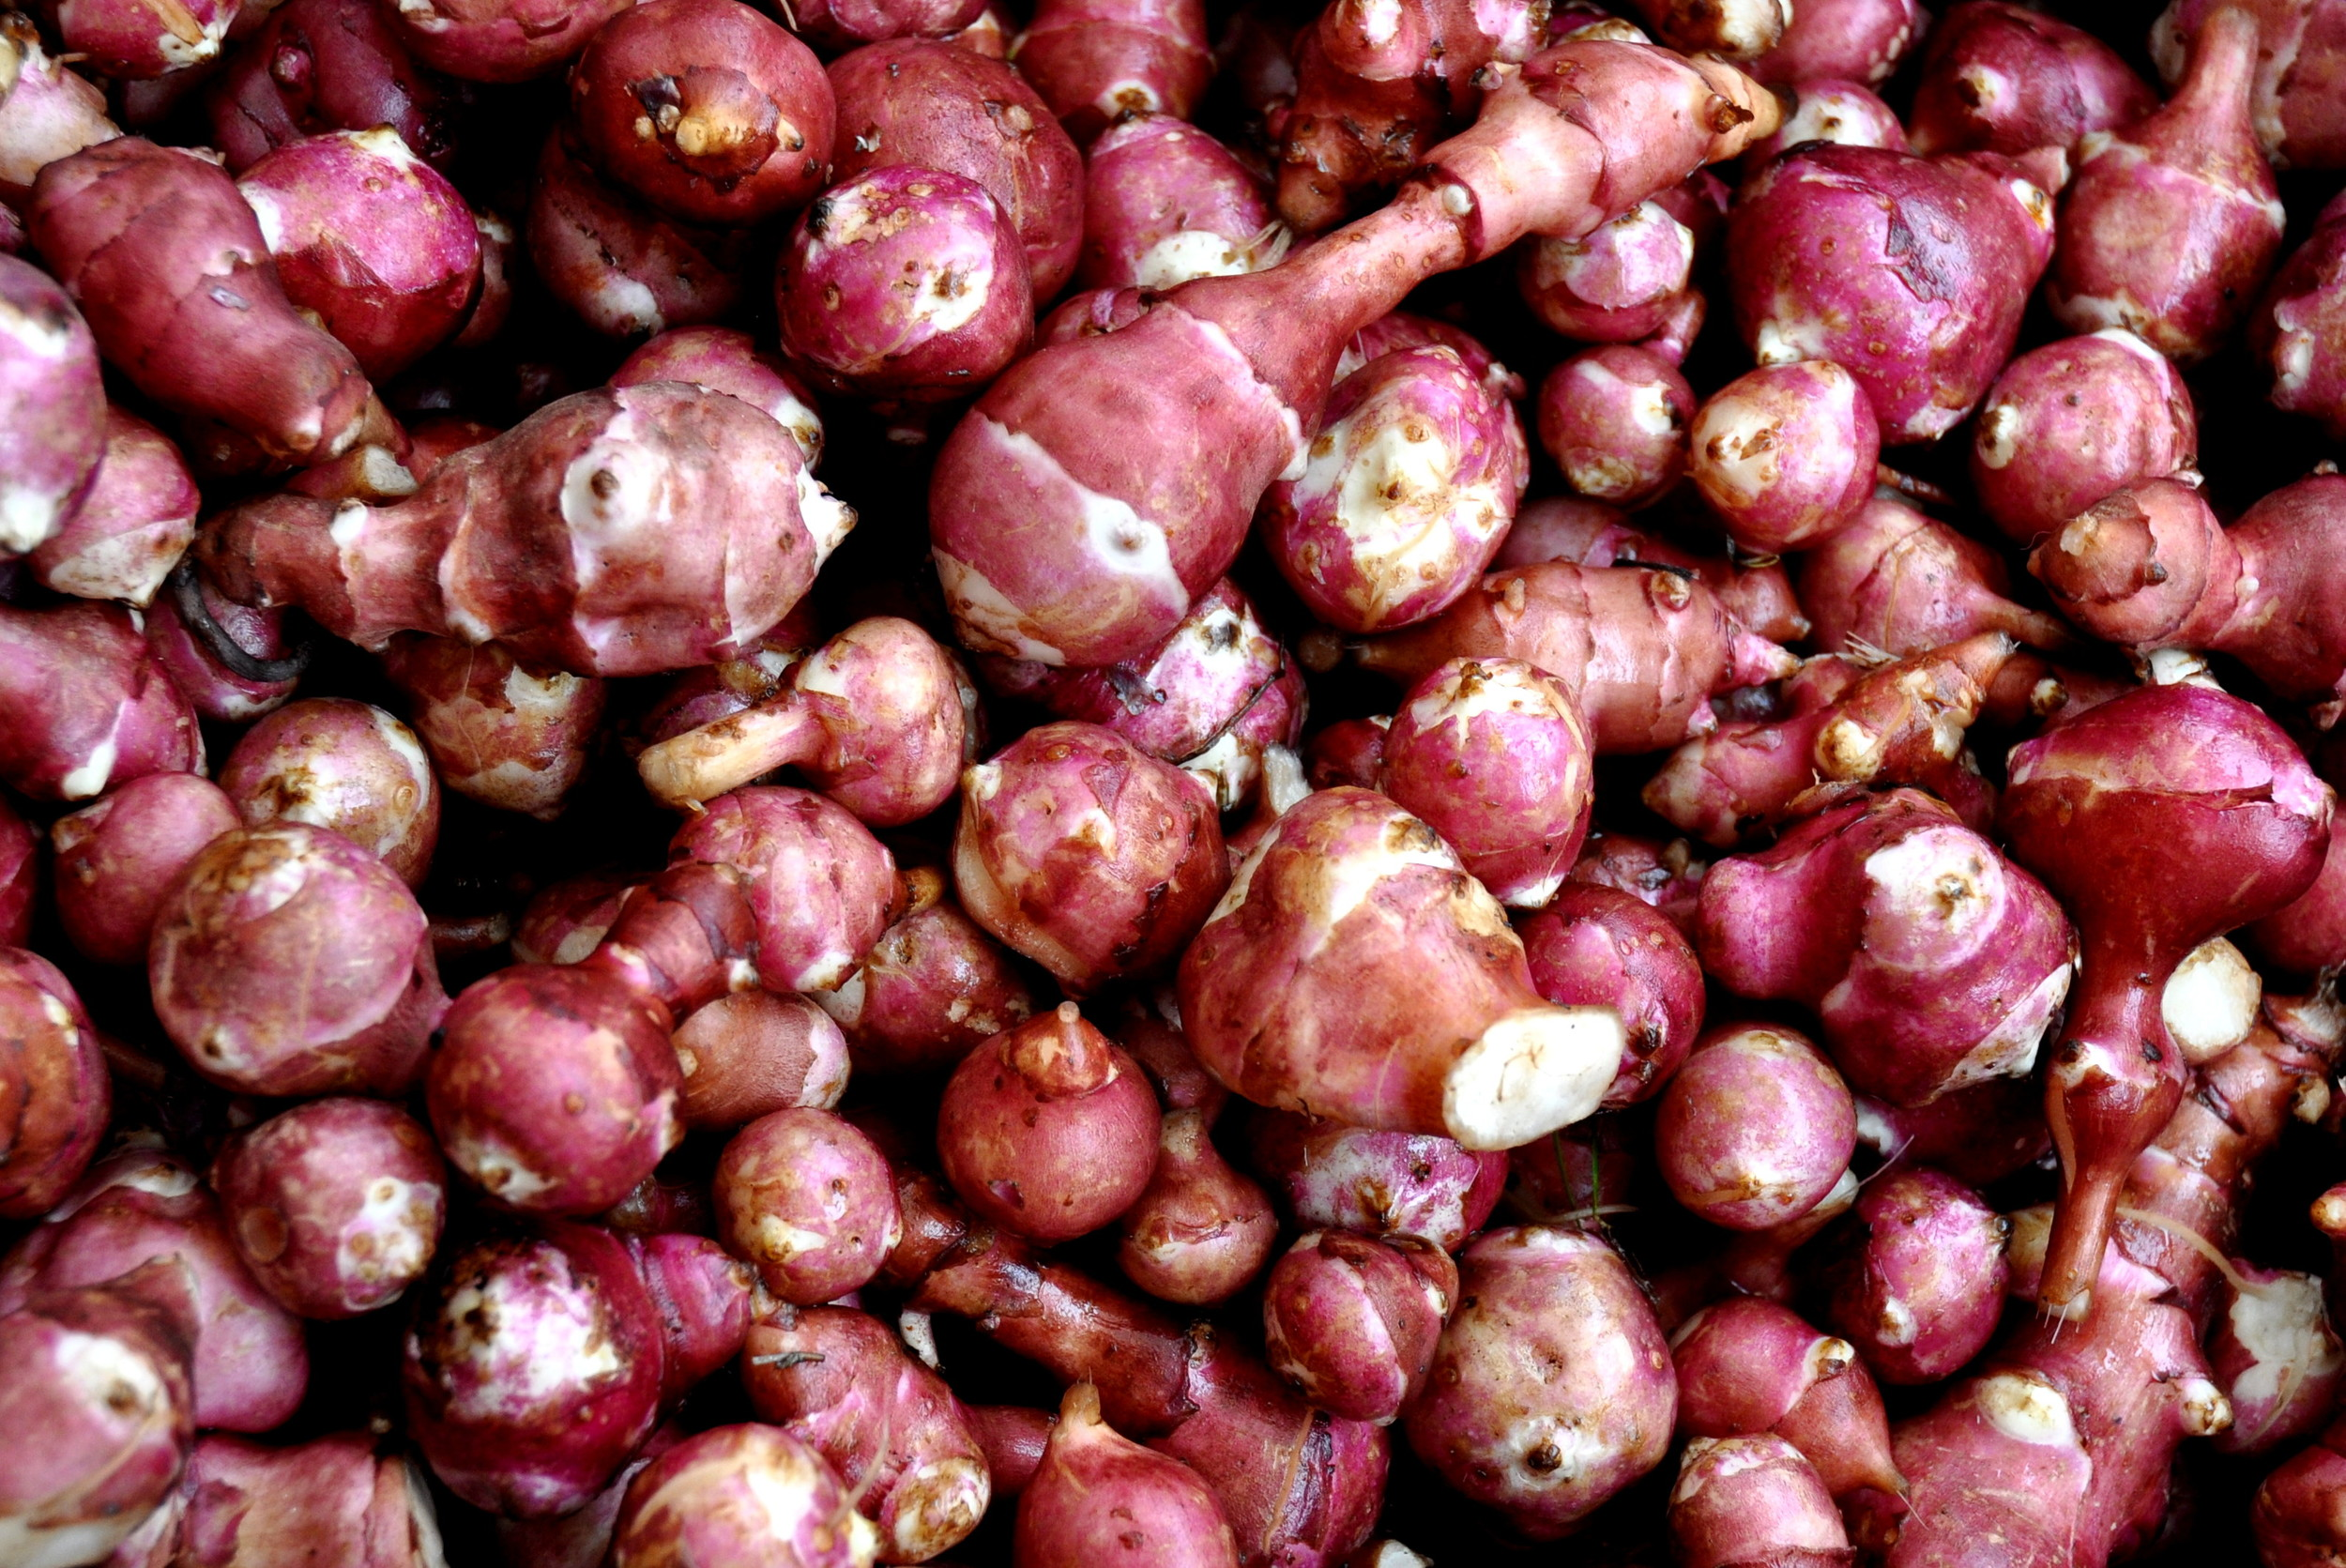 Red Sunchokes from Stoney Plains Organic Farm. Photo copyright 2012 by Zachary D. Lyons.